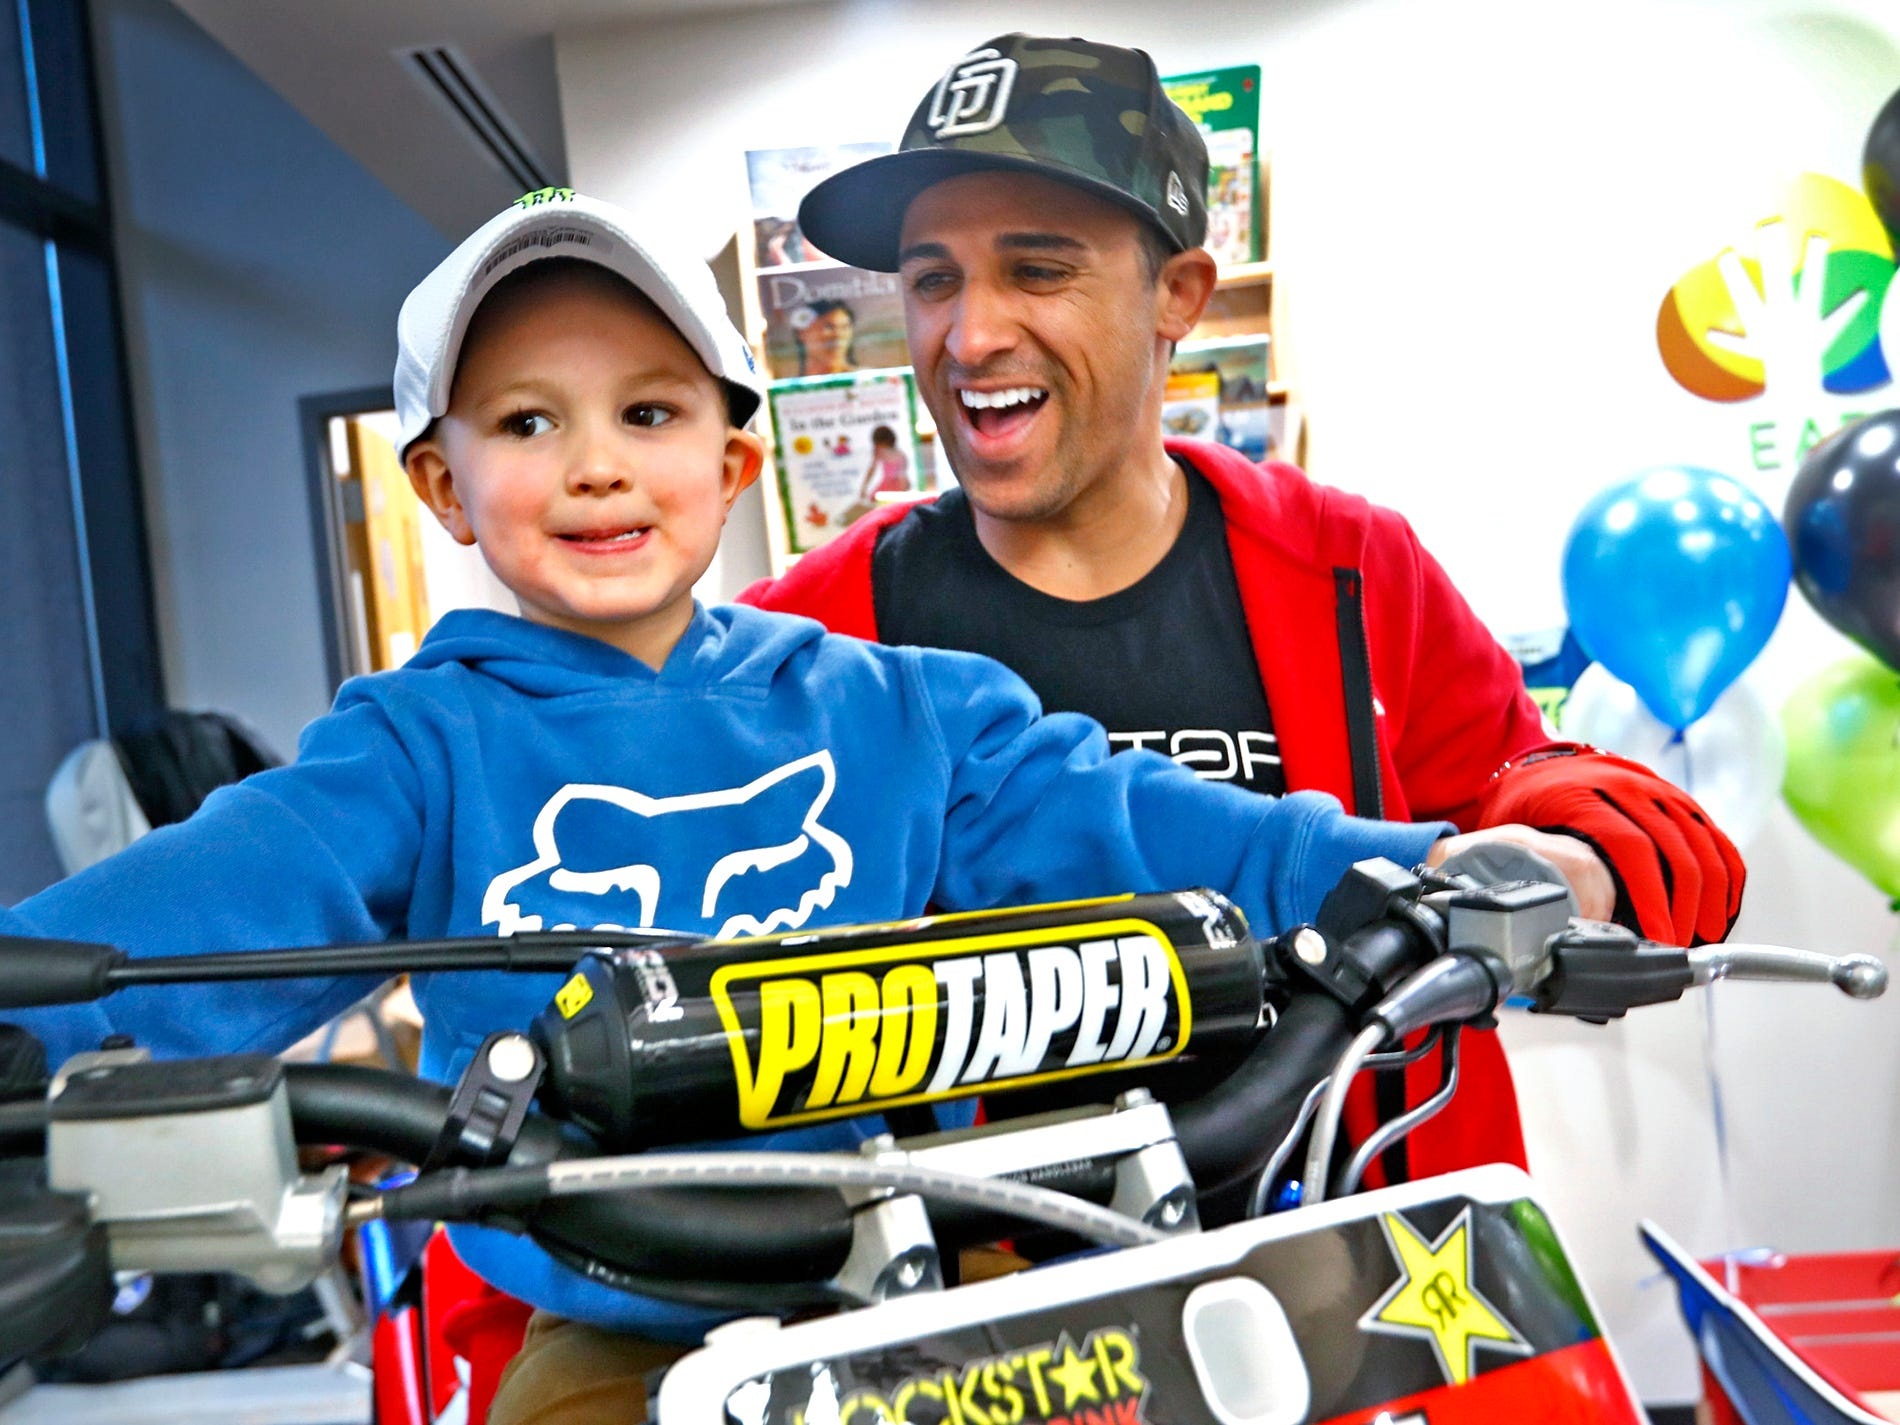 Supercross racer Mike Alessi, right, laughs with Jaxson Bare trying out a Superercross simulator, as Alessi visits with kids at Day Early Learning Center, Thursday, March 14, 2019.  Alessi provided Supercross rider jerseys and hats for the kids and gave wagon rides, on a break before the upcoming Supercross race.